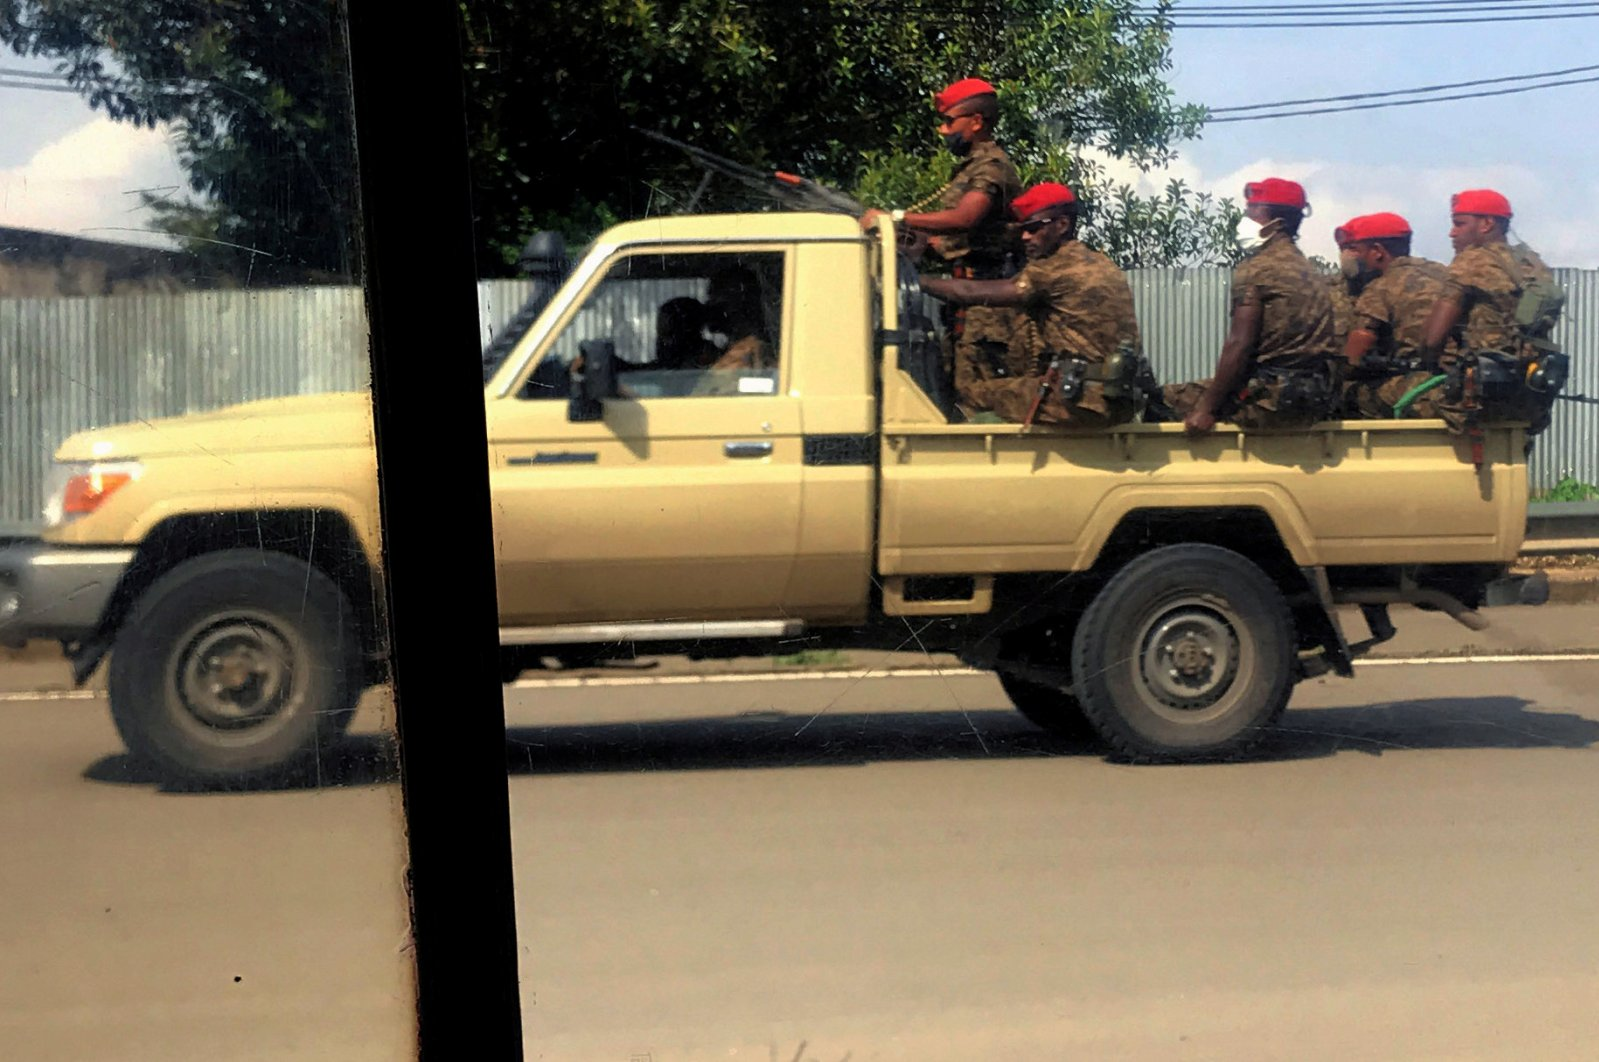 Ethiopian military ride on their pick-up truck as they patrol the streets following protests in Addis Ababa, Ethiopia on July 2, 2020. (Reuters Photo)